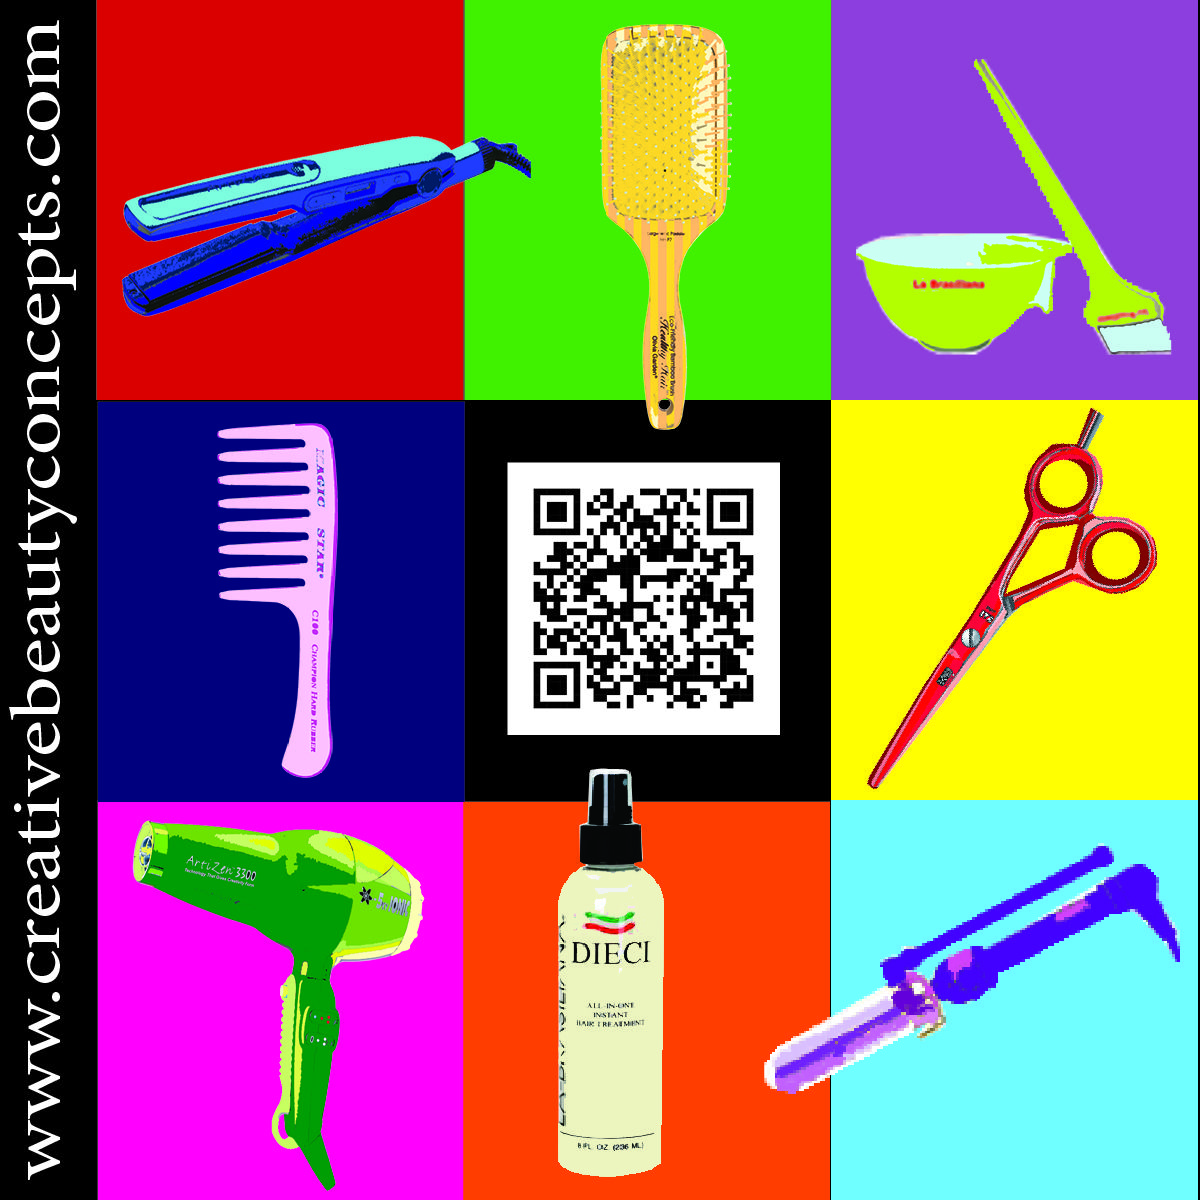 Creative Beauty Concepts offers education for all of our